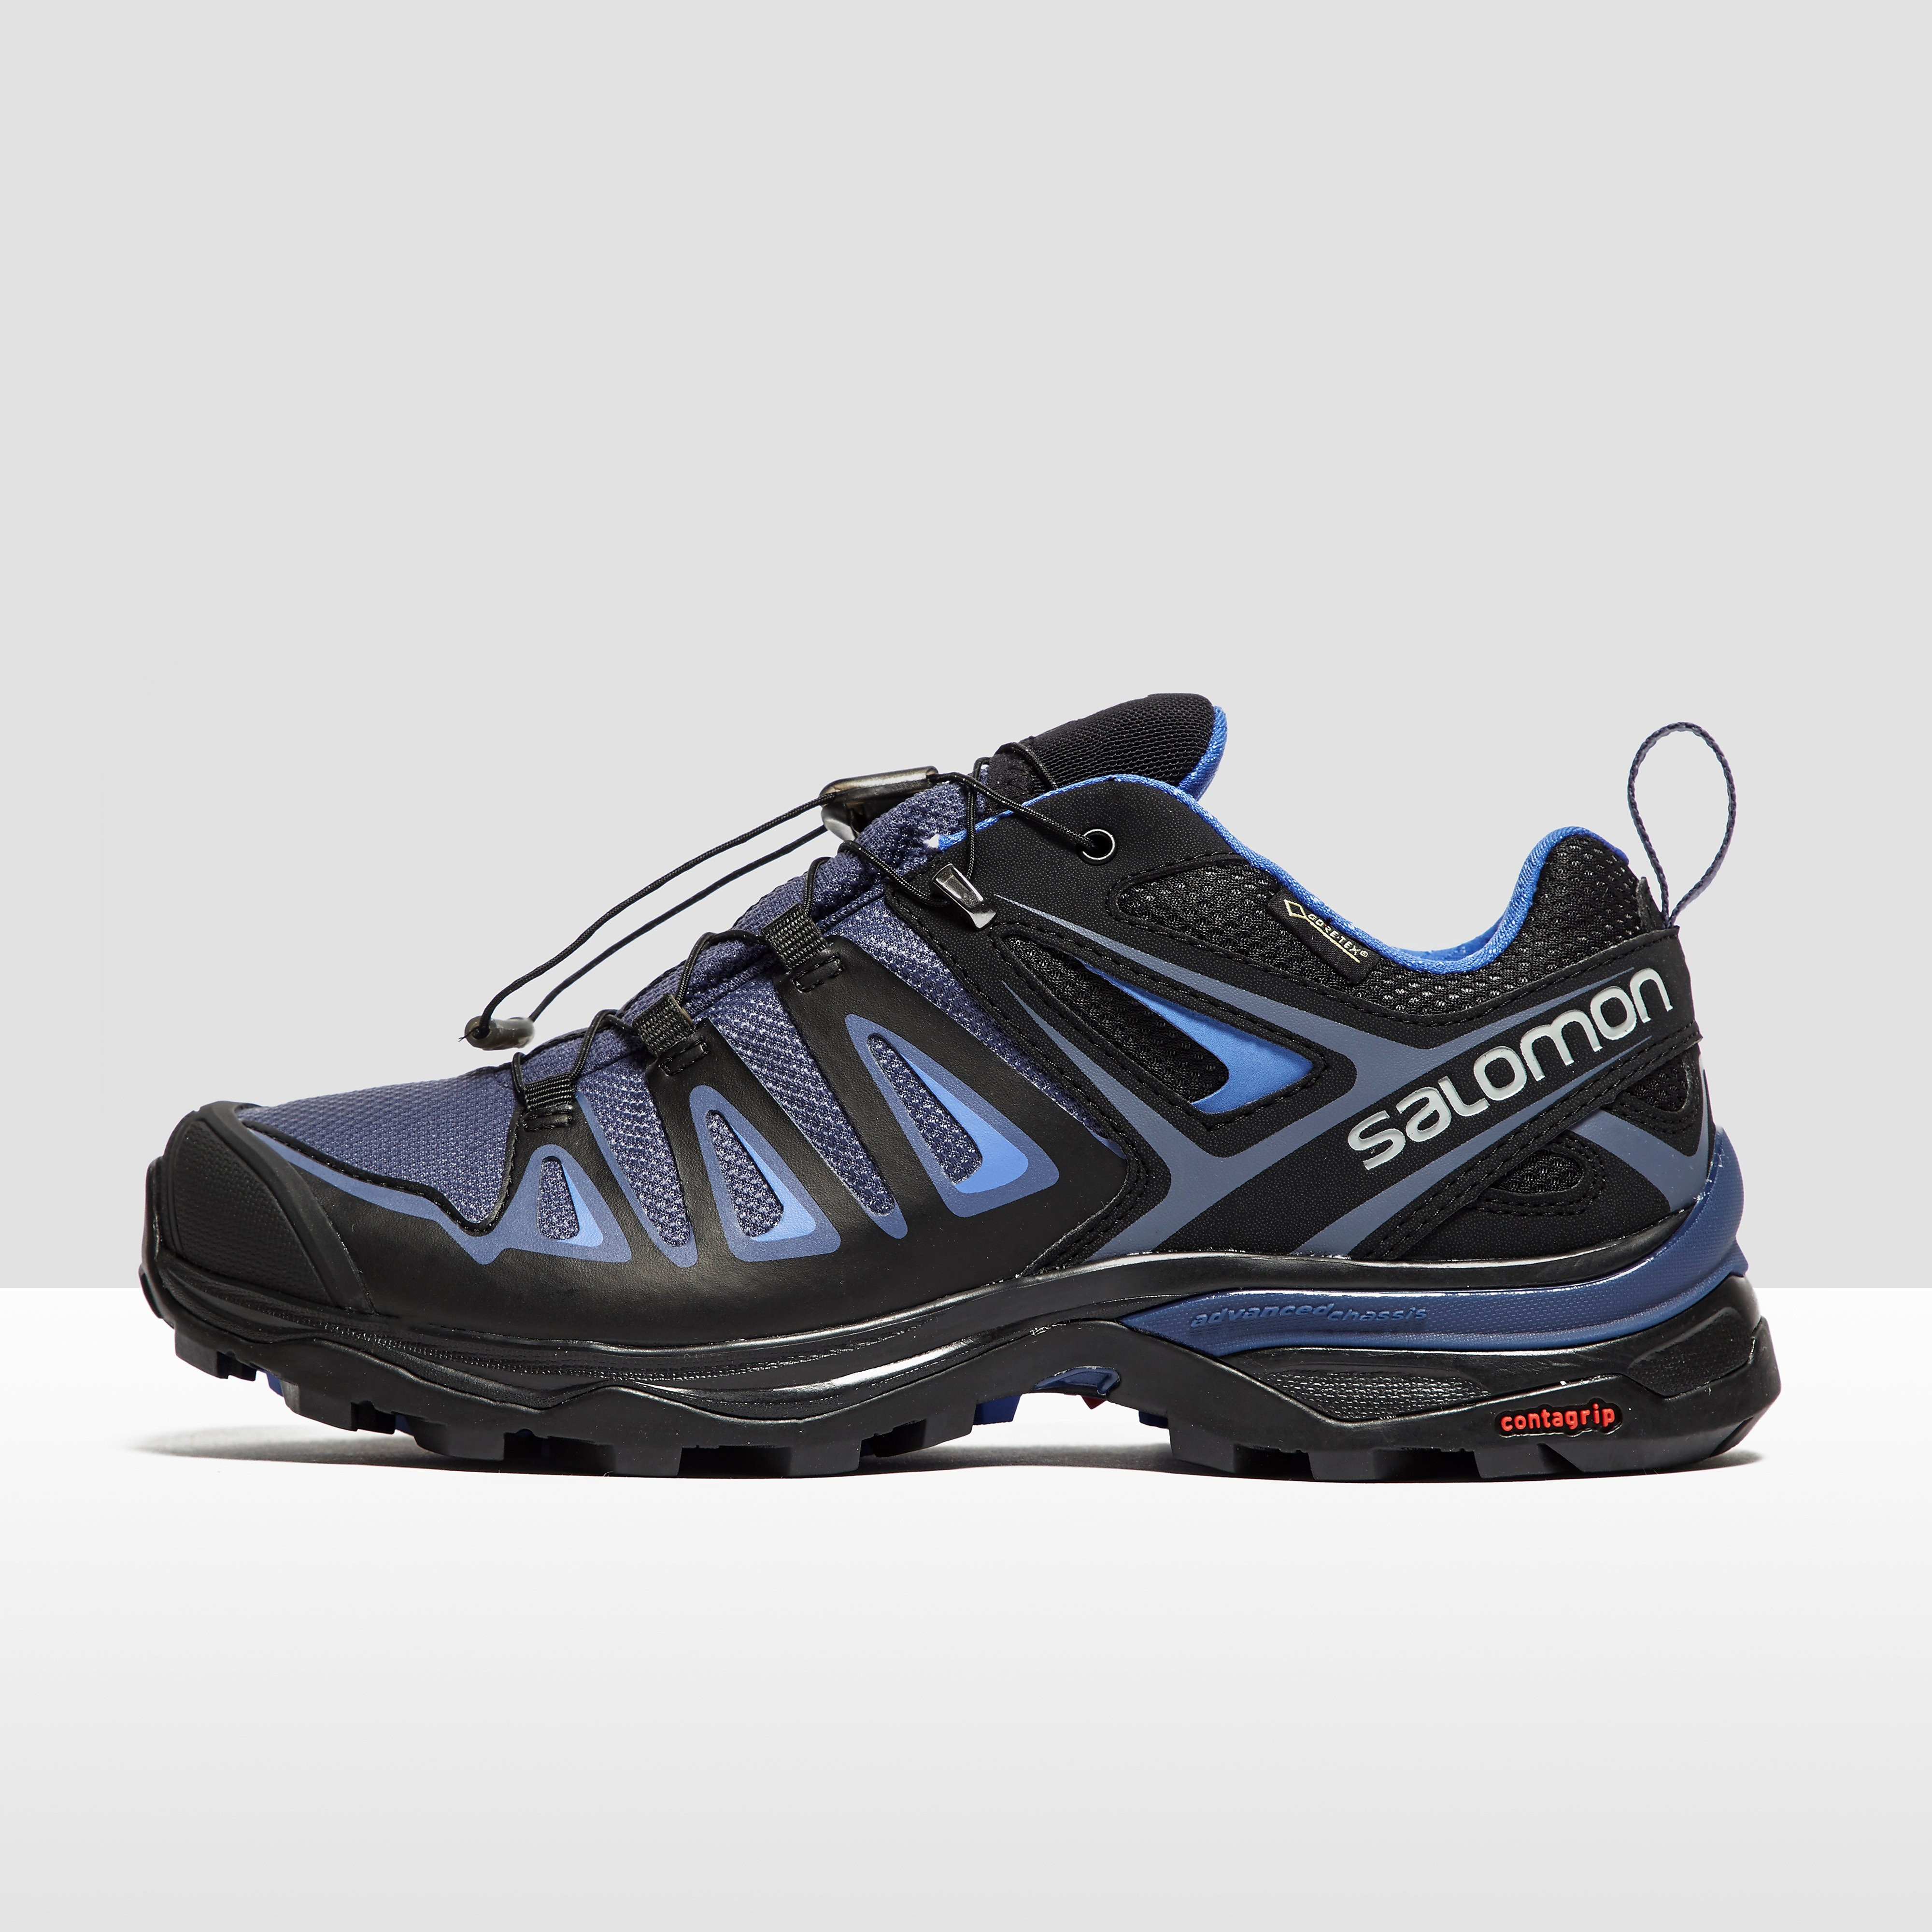 Salomon X ULTRA 3 GTX Women's Hiking Shoes